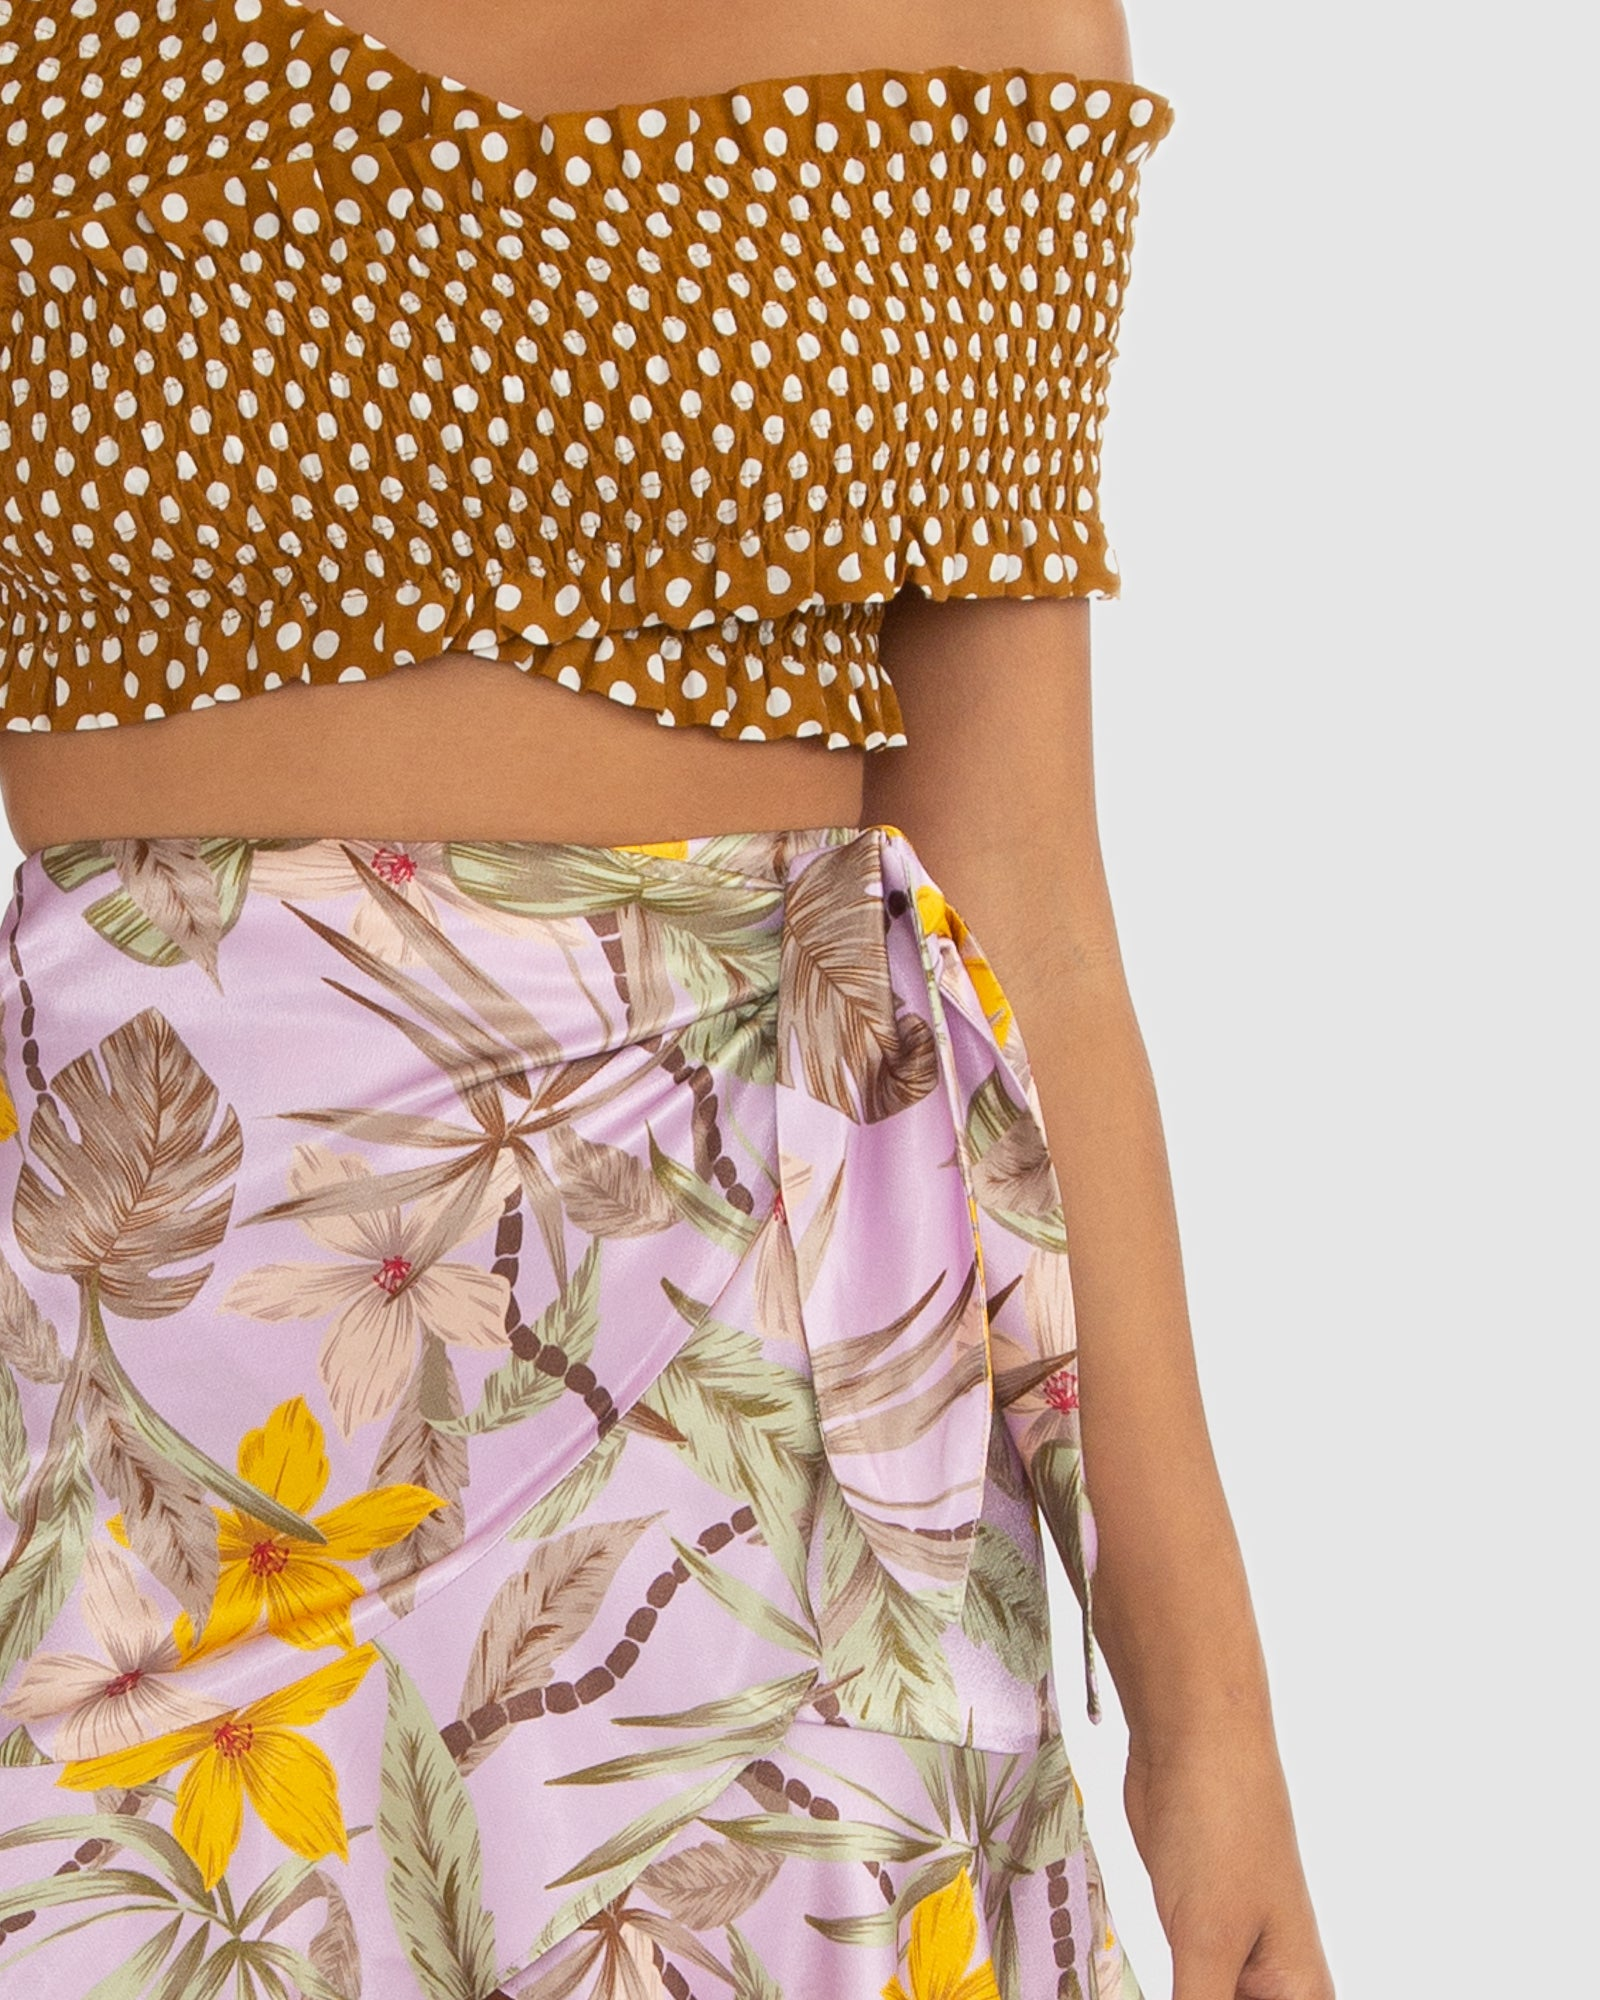 CAN-CAN SKIRT